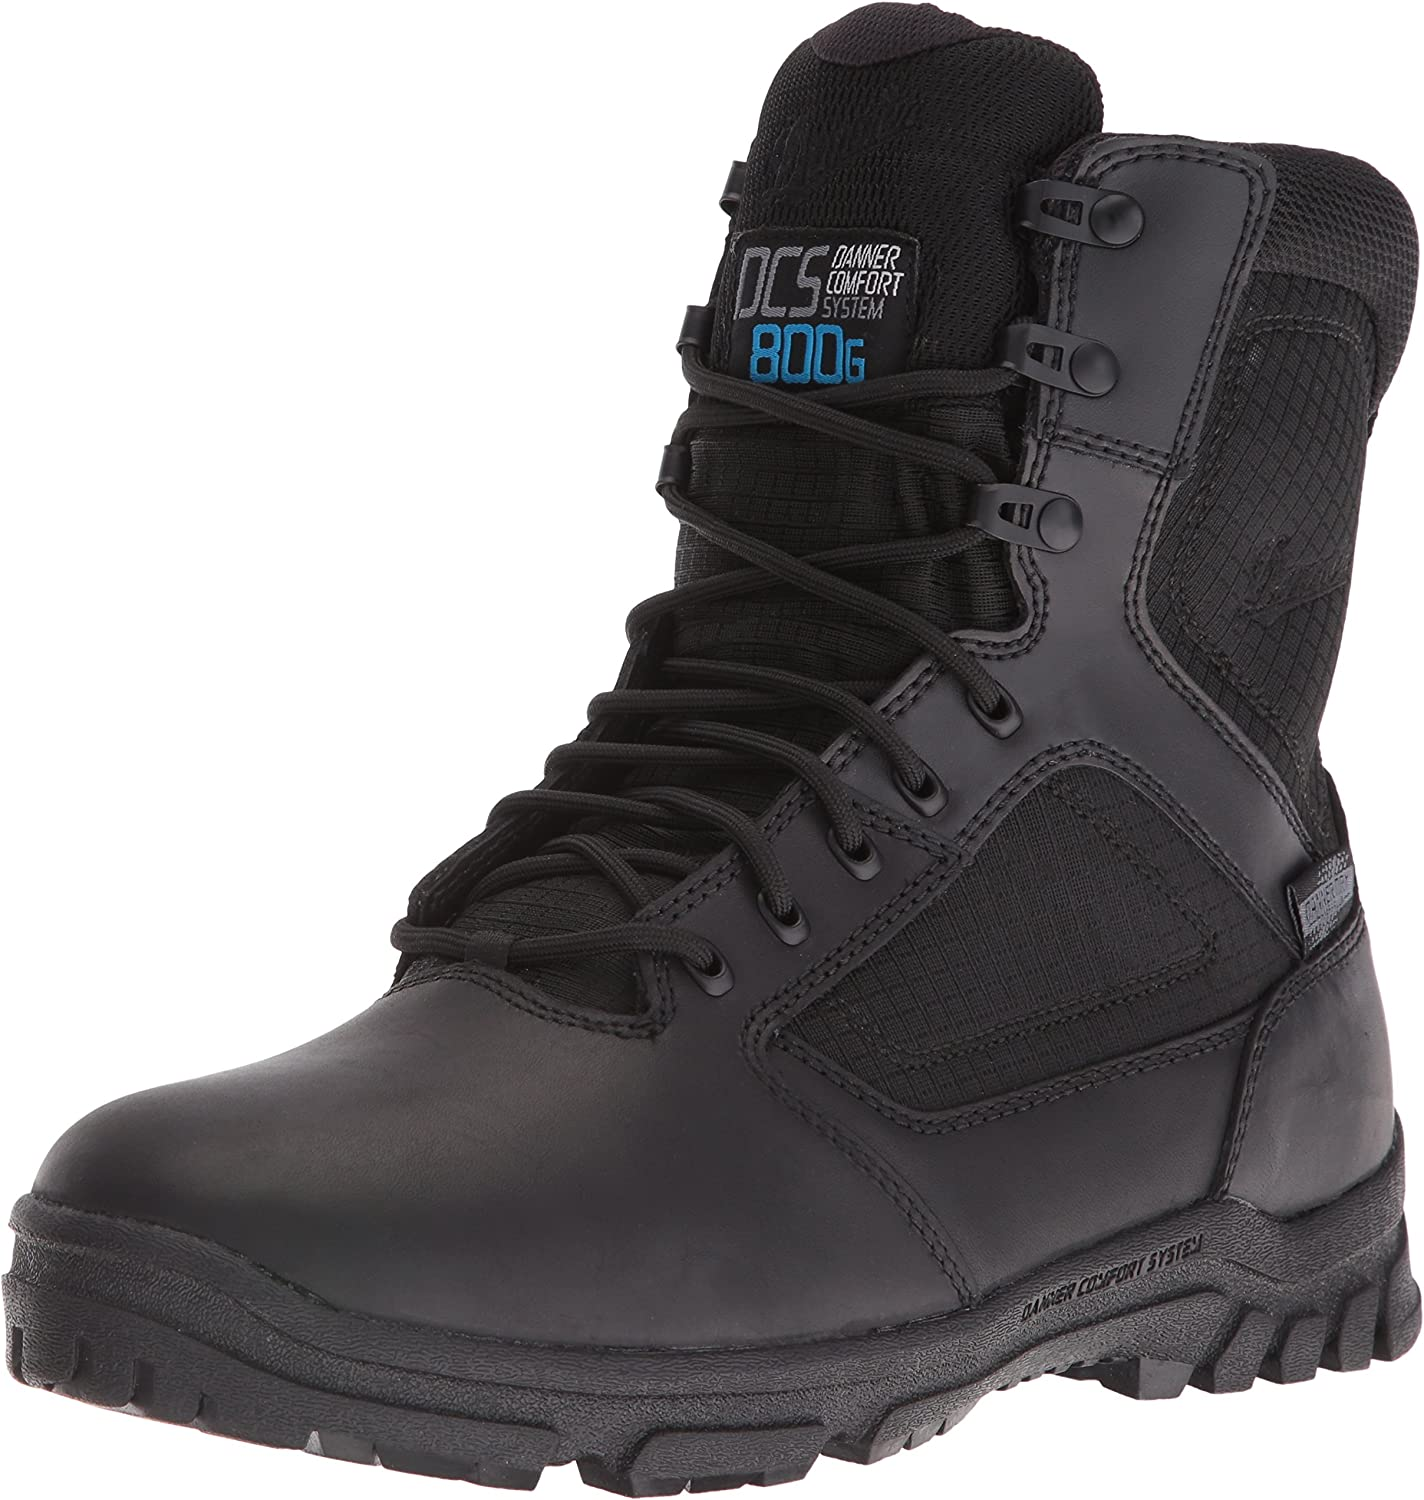 Danner Men s Lookout 8 800G Military and Tactical Boot